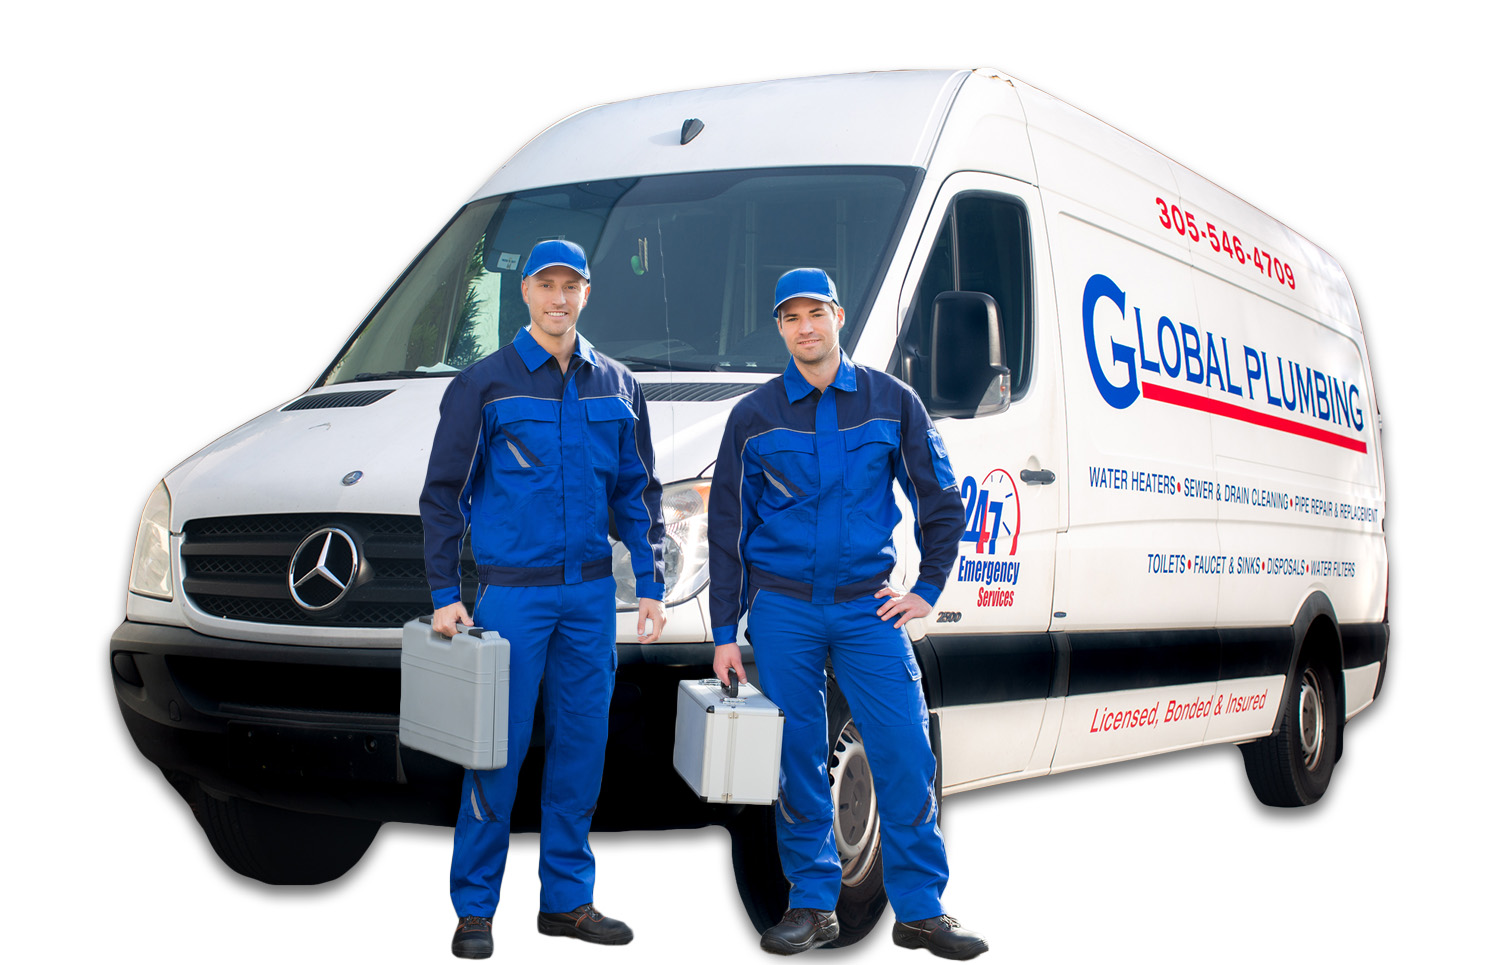 Global Plumbing, 24 hour emergency plumbers near me, Expert Plumbing, Water Heaters, and Bathroom Remodeling services in South Florida serving  Broward, Miami-Dade and Palm Beach County